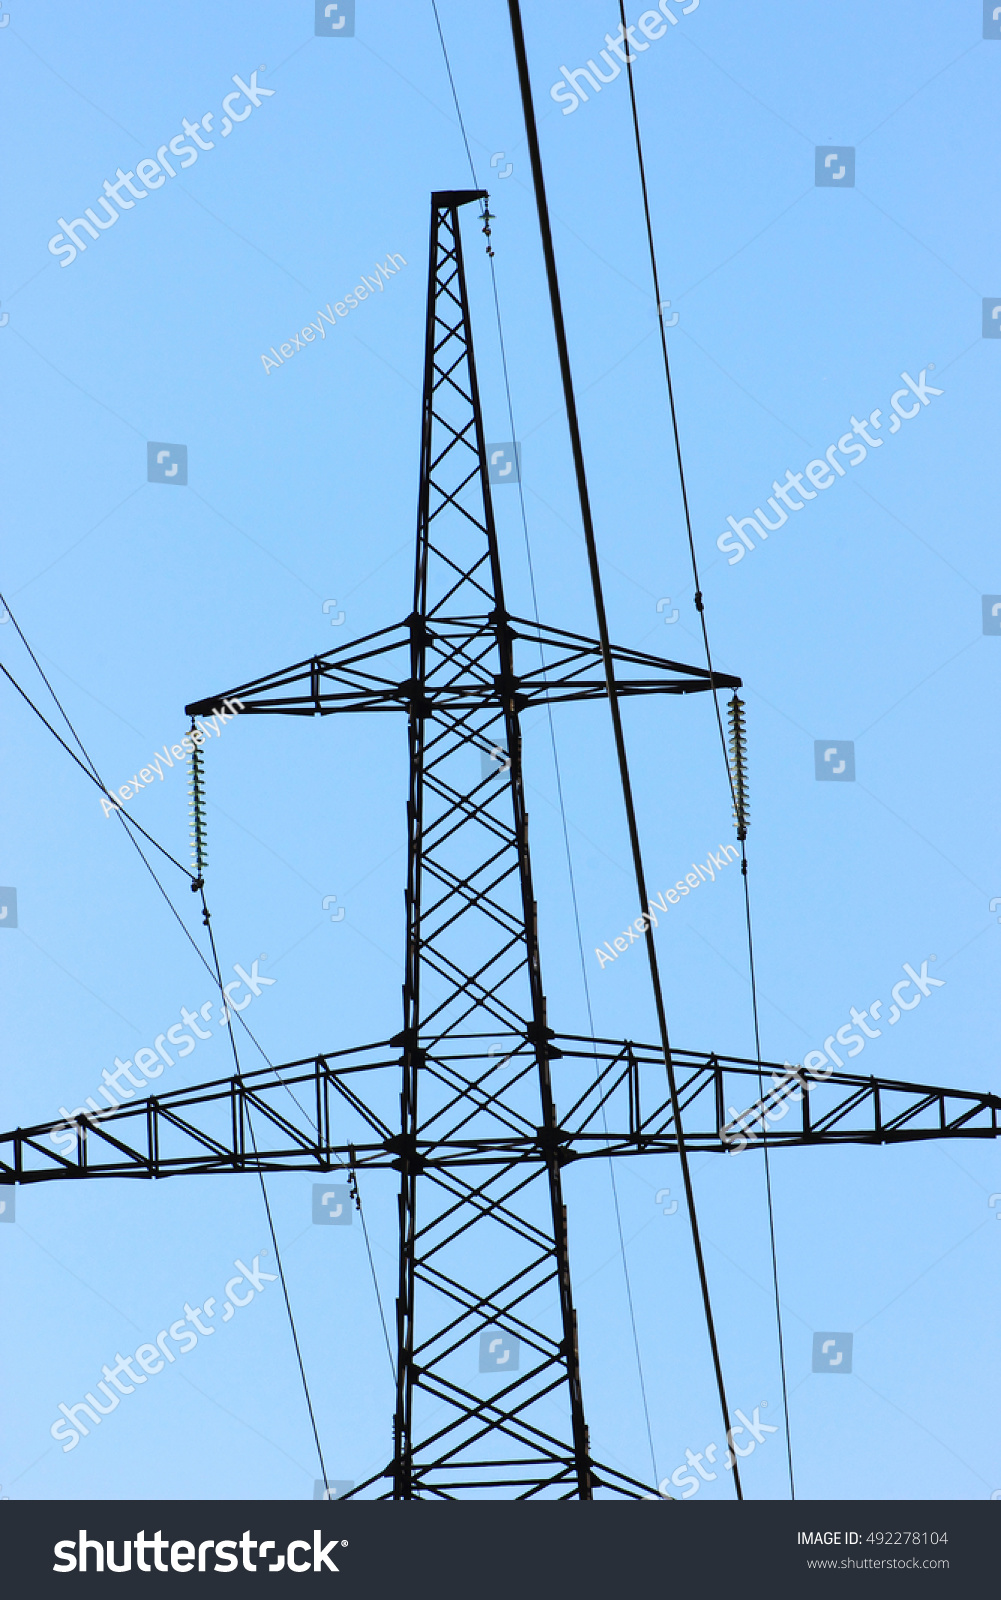 Design High Voltage Power Lines Wires Stock Photo (Royalty Free ...